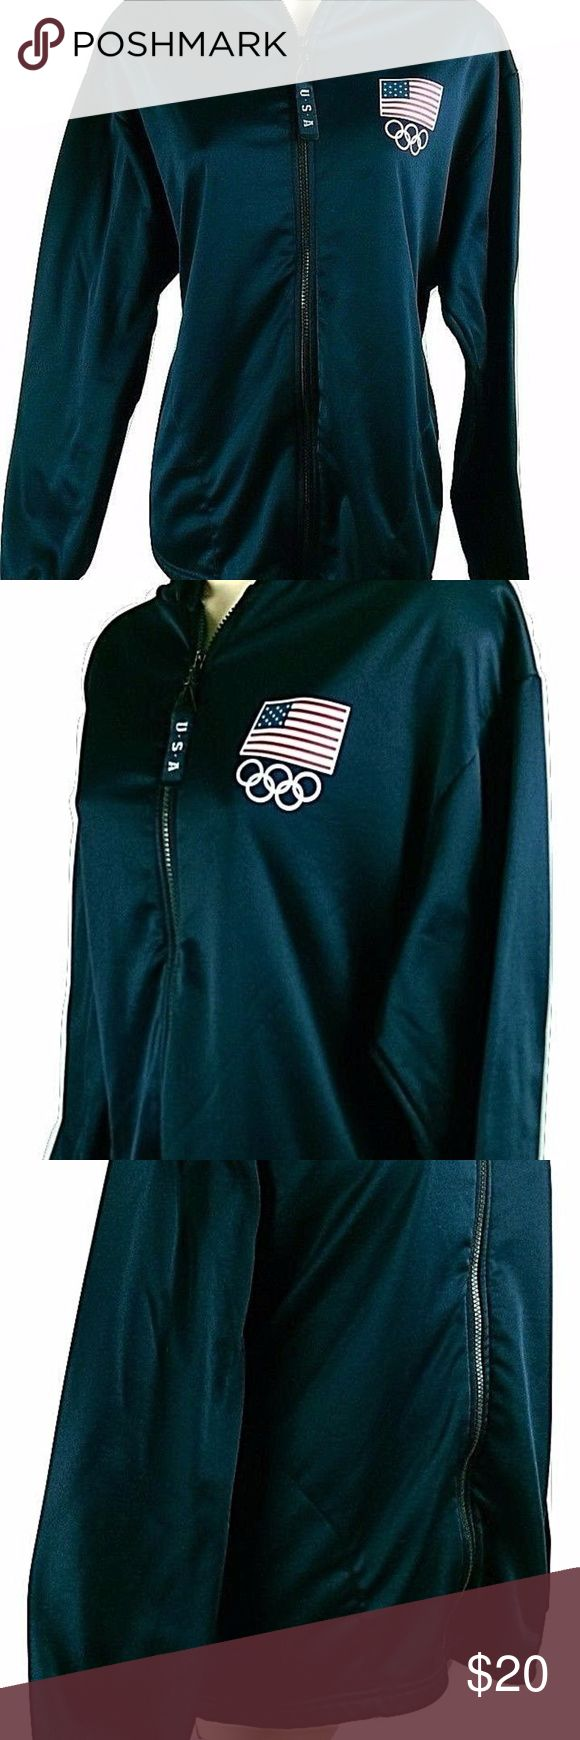 """US Olympic Committee Black Hooded Jacket This is a black polyester USA Olympics hooded jacket. Lightweight . Has the American flag on the top of the Olympic icon in front. The inside is a soft fleece-like material.Two front pockets and it zips up with a U.S.A. ribbon pull on the zipper. Size large. See the pics.  Measurements (lying flat):  Chest (across the front) - 21"""" Length - 26"""" Sleeve - 23"""" _______  * Comes from a clean, smoke-free, pet-free environment. * Color variations may occur…"""